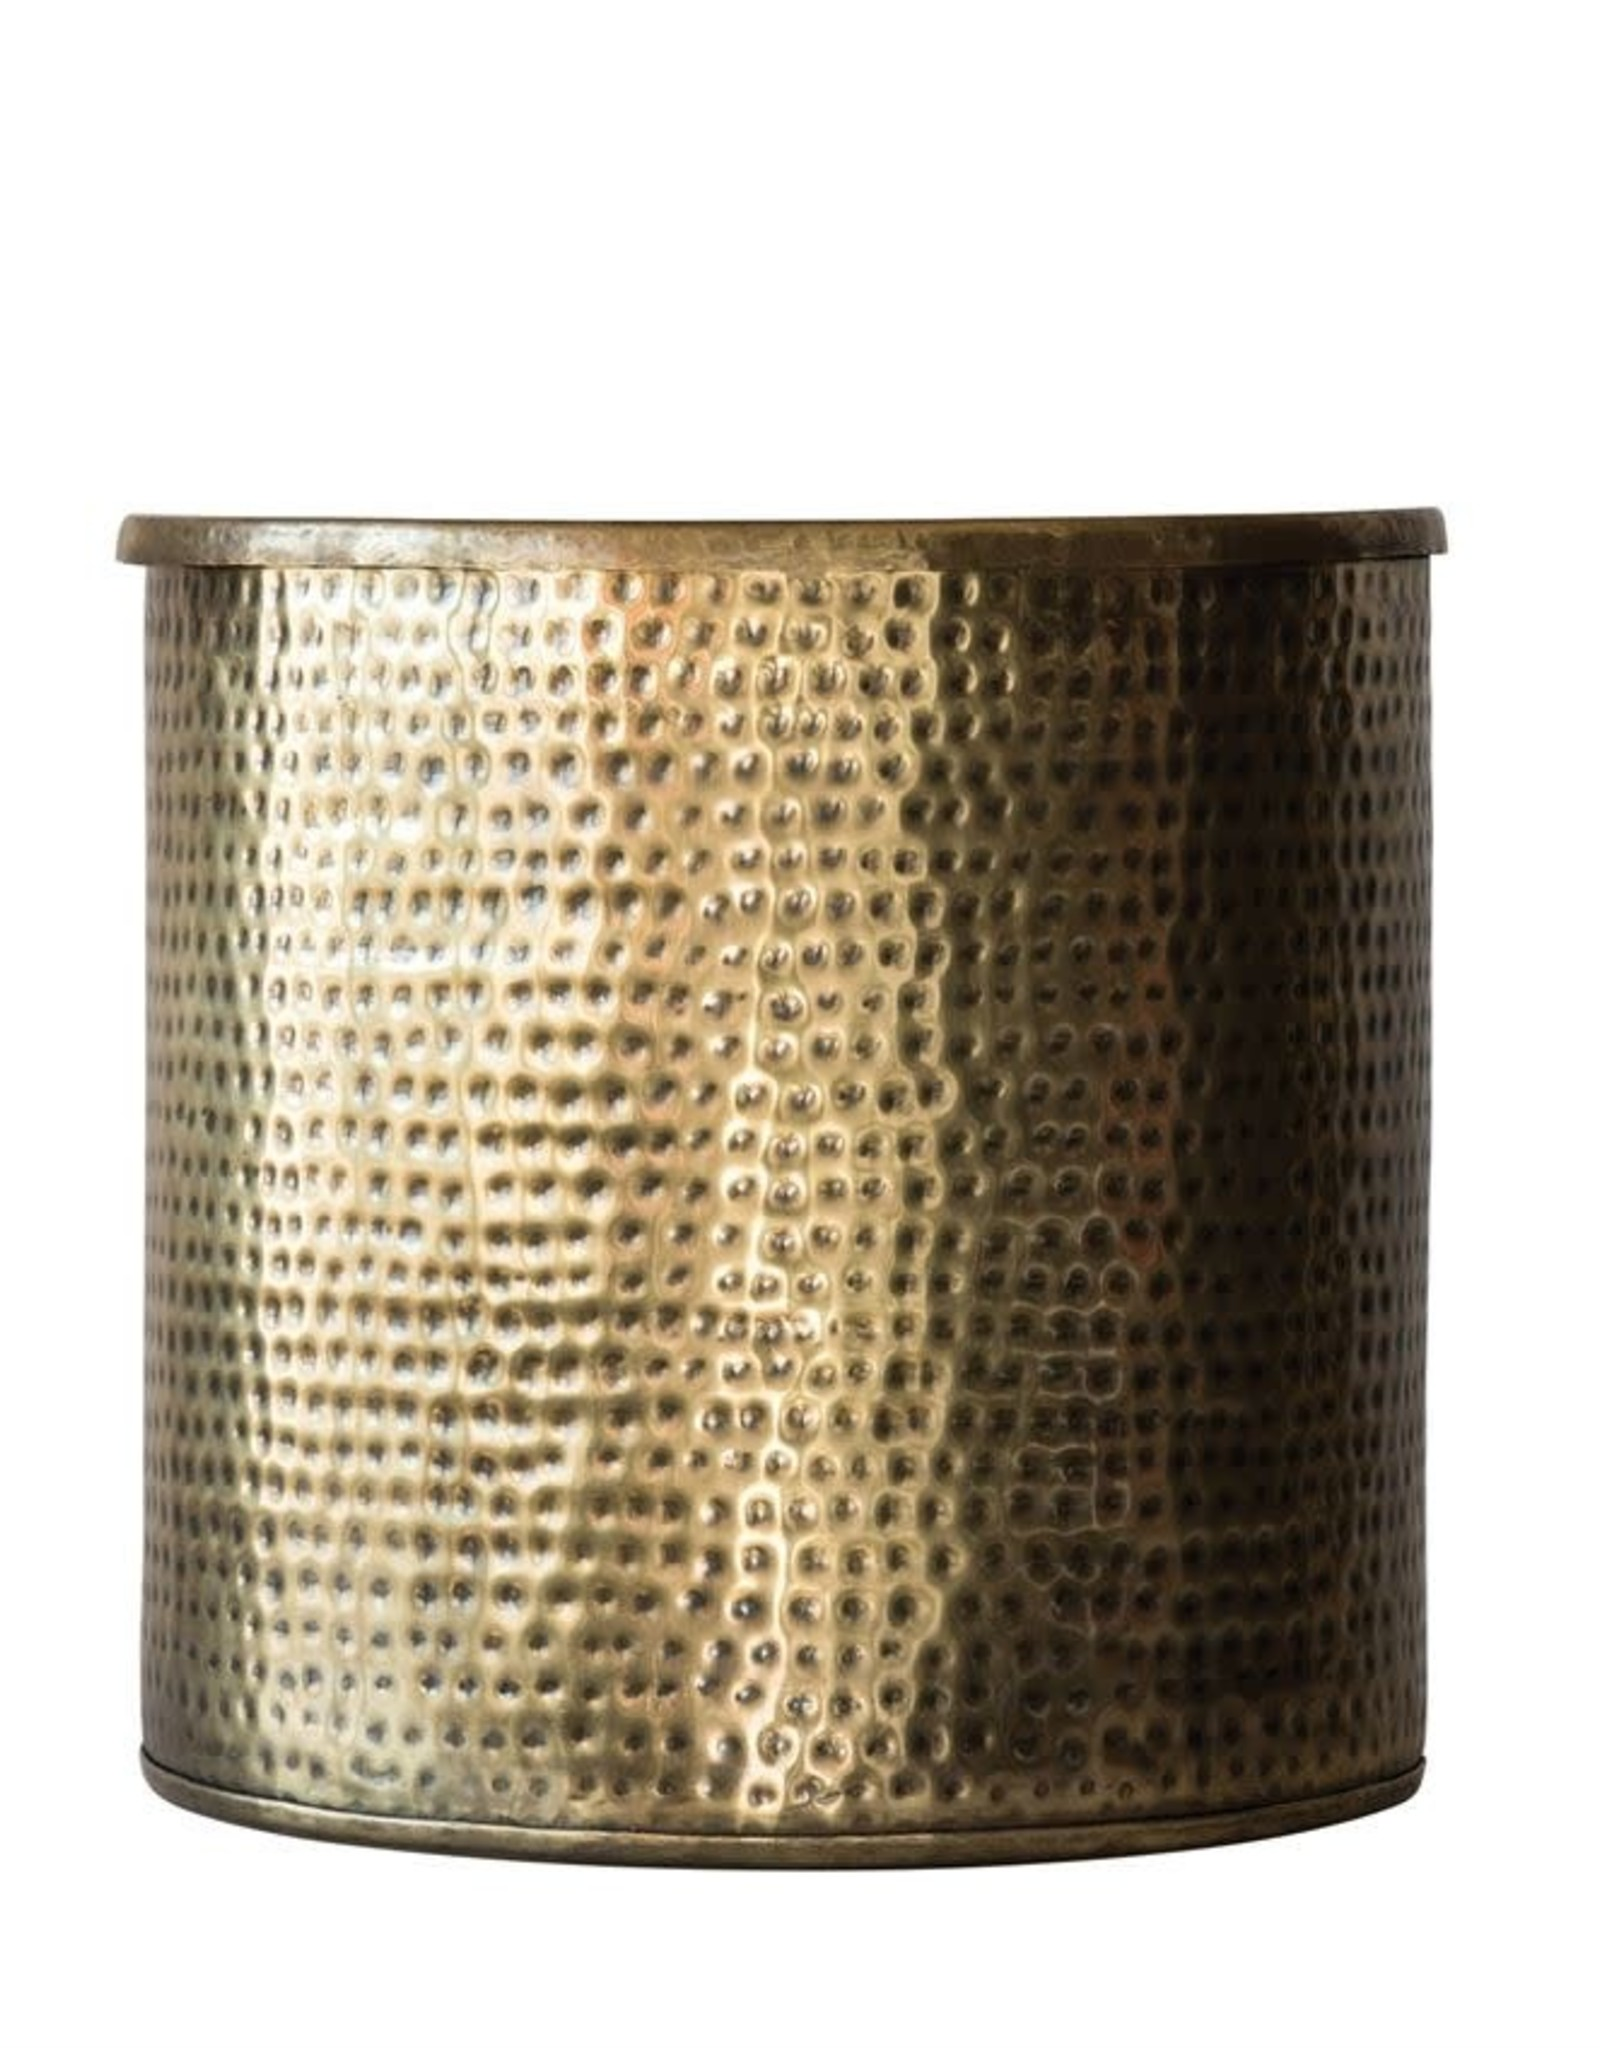 Antique Brass Drum Table With Lid